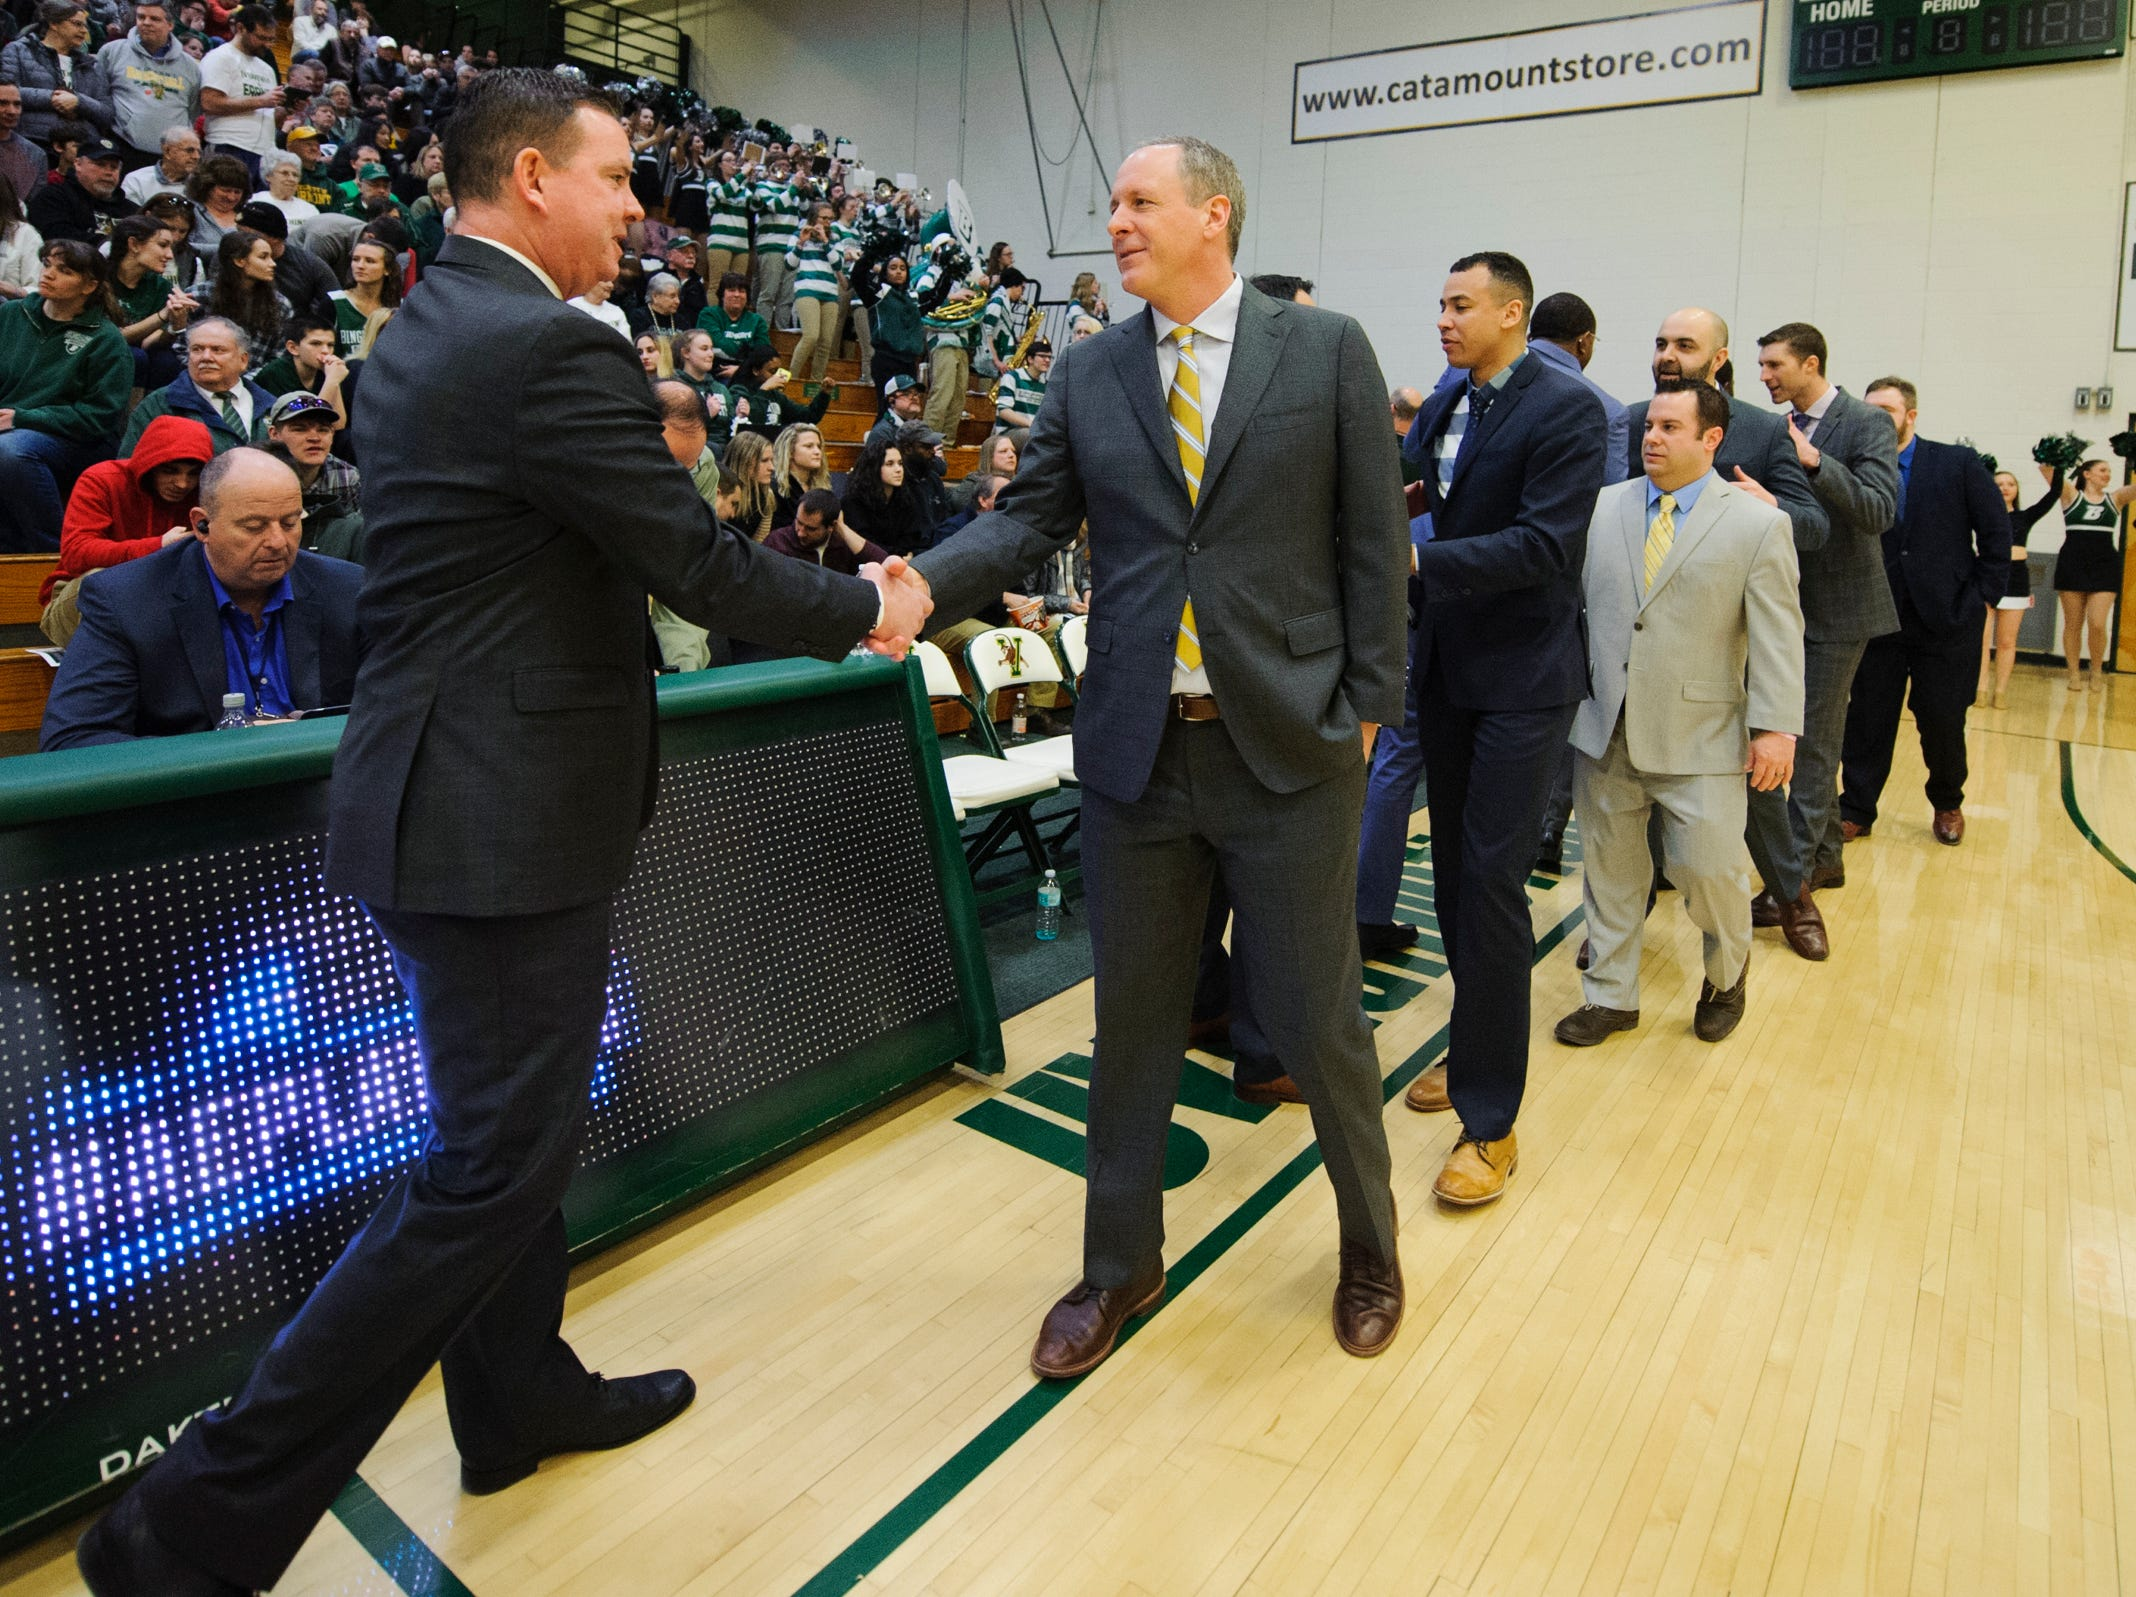 Coaches shake before the America East semifinal game between the Binghamton Bearcats and the Vermont Catamounts at Patrick Gym on Tuesday March 12, 2019 in Burlington, Vermont.